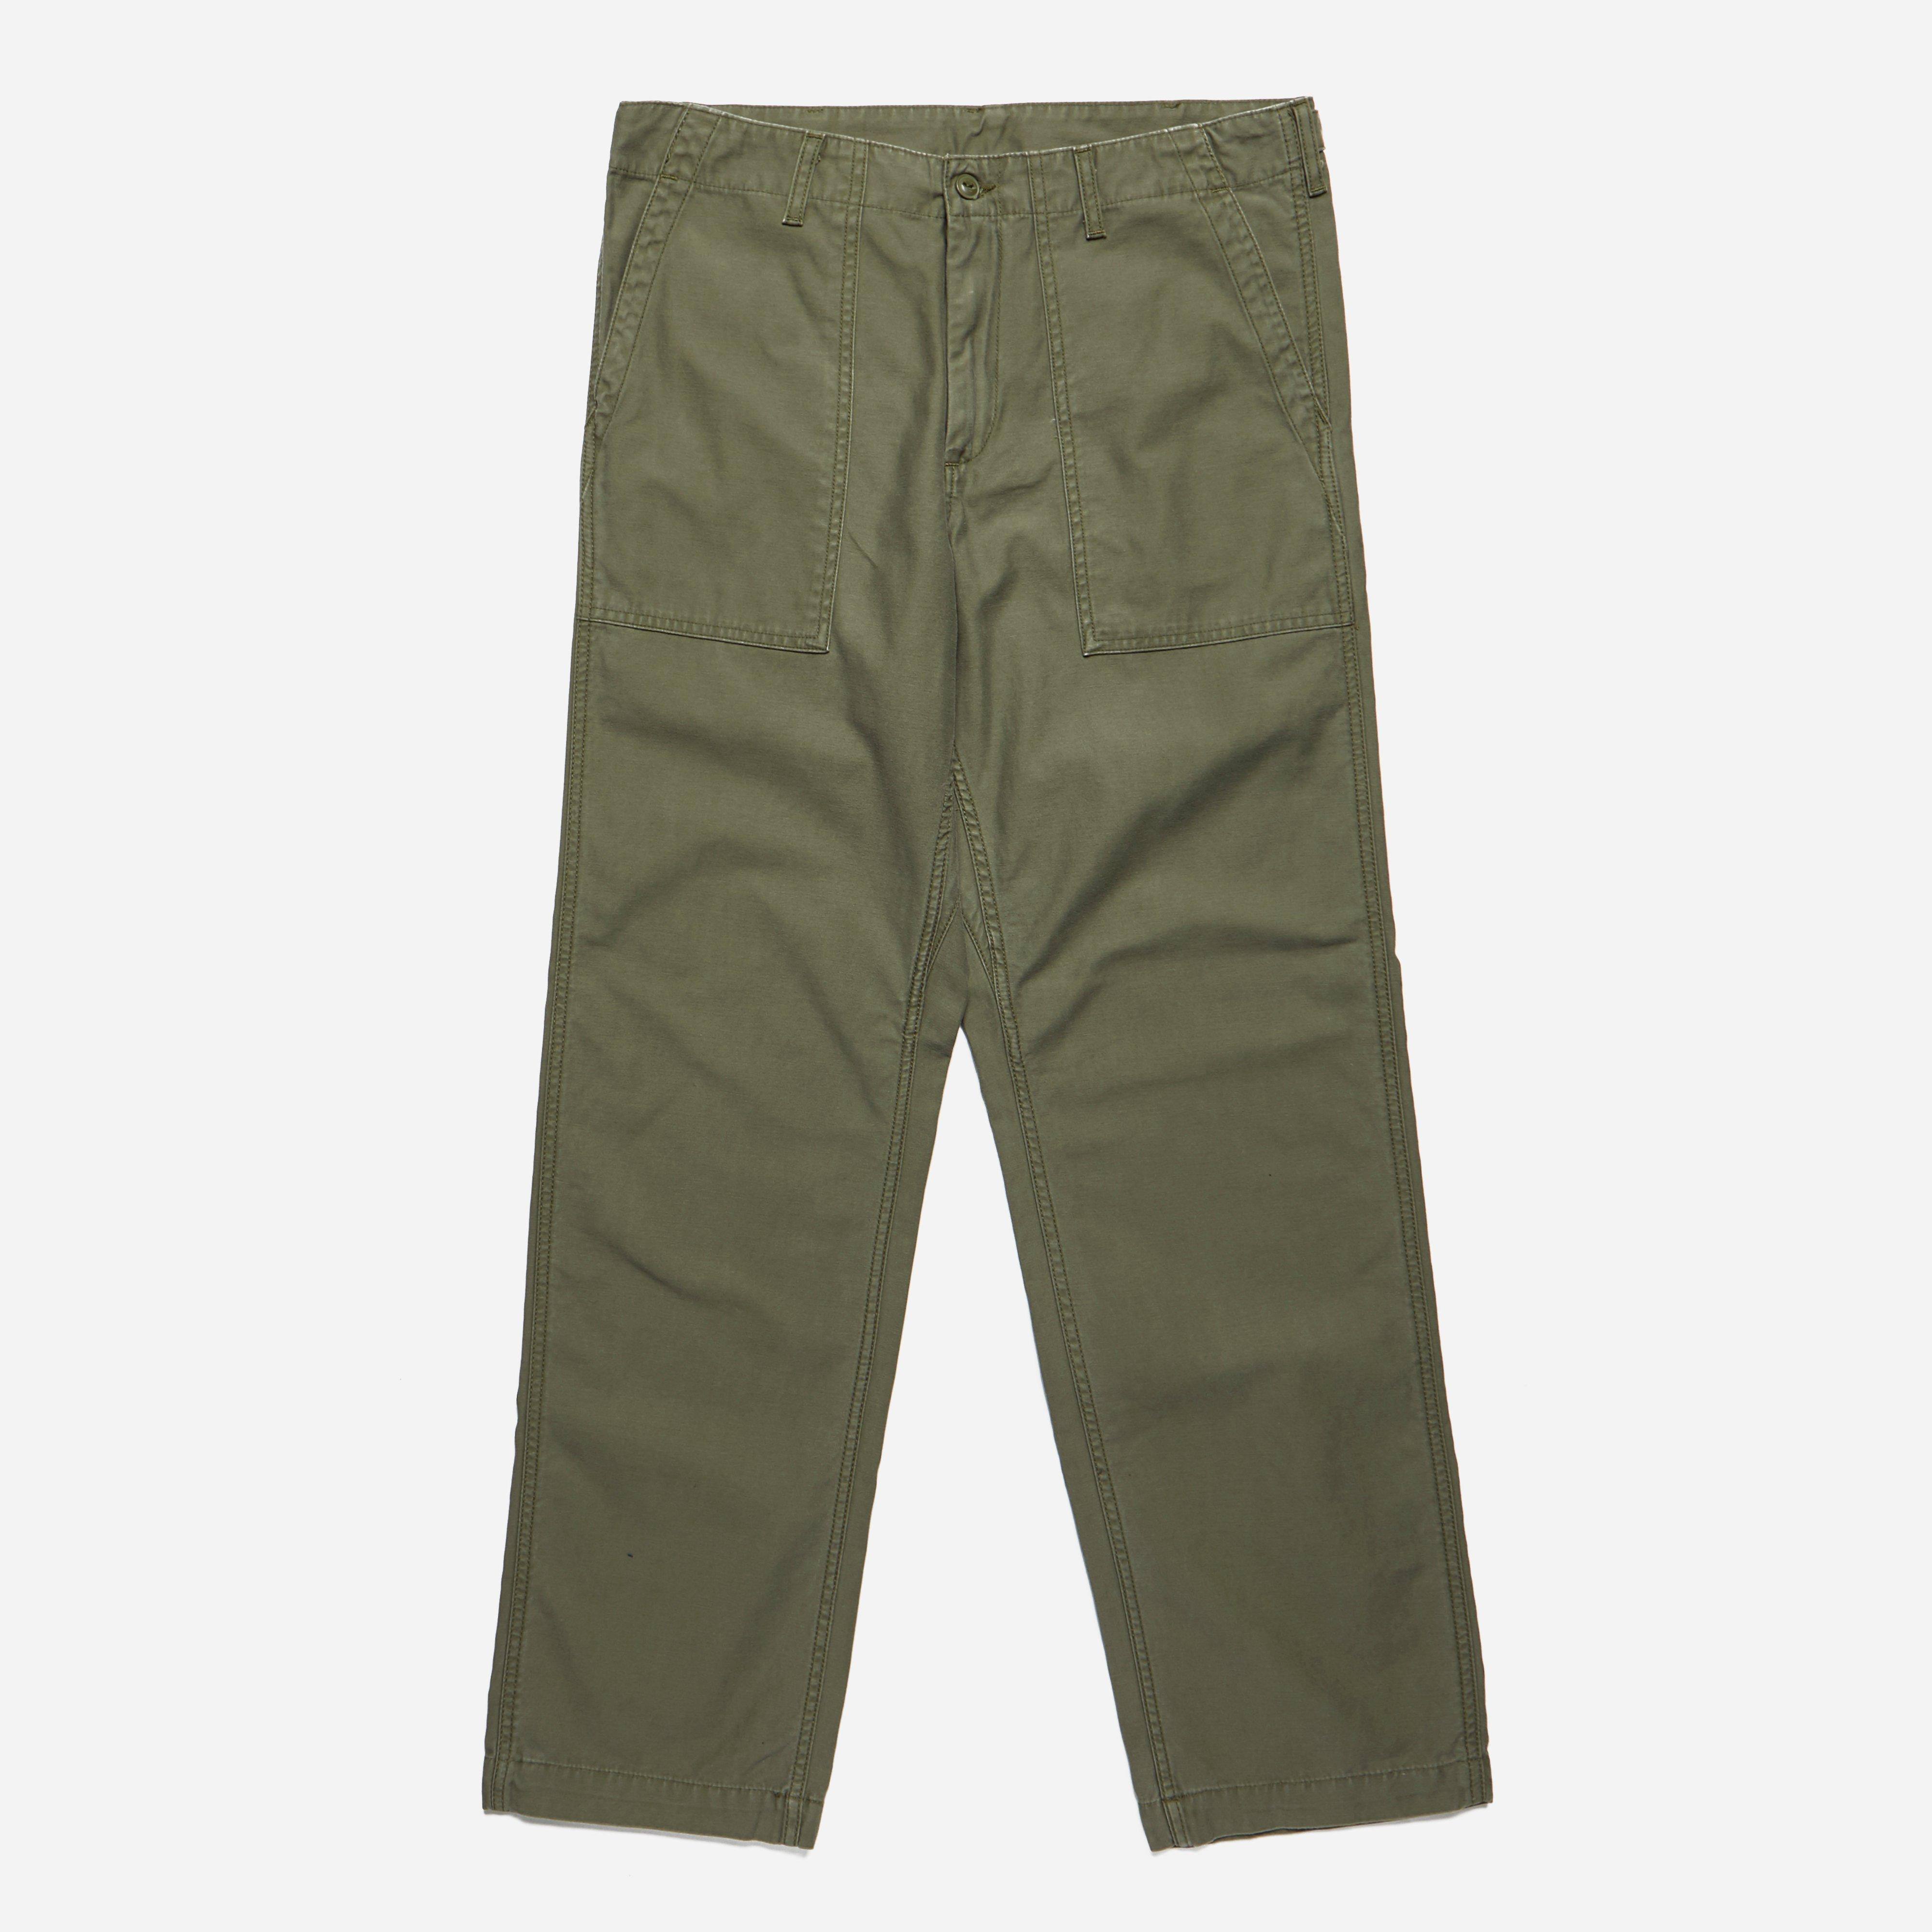 Carhartt Fatigue Pants Stone Washed